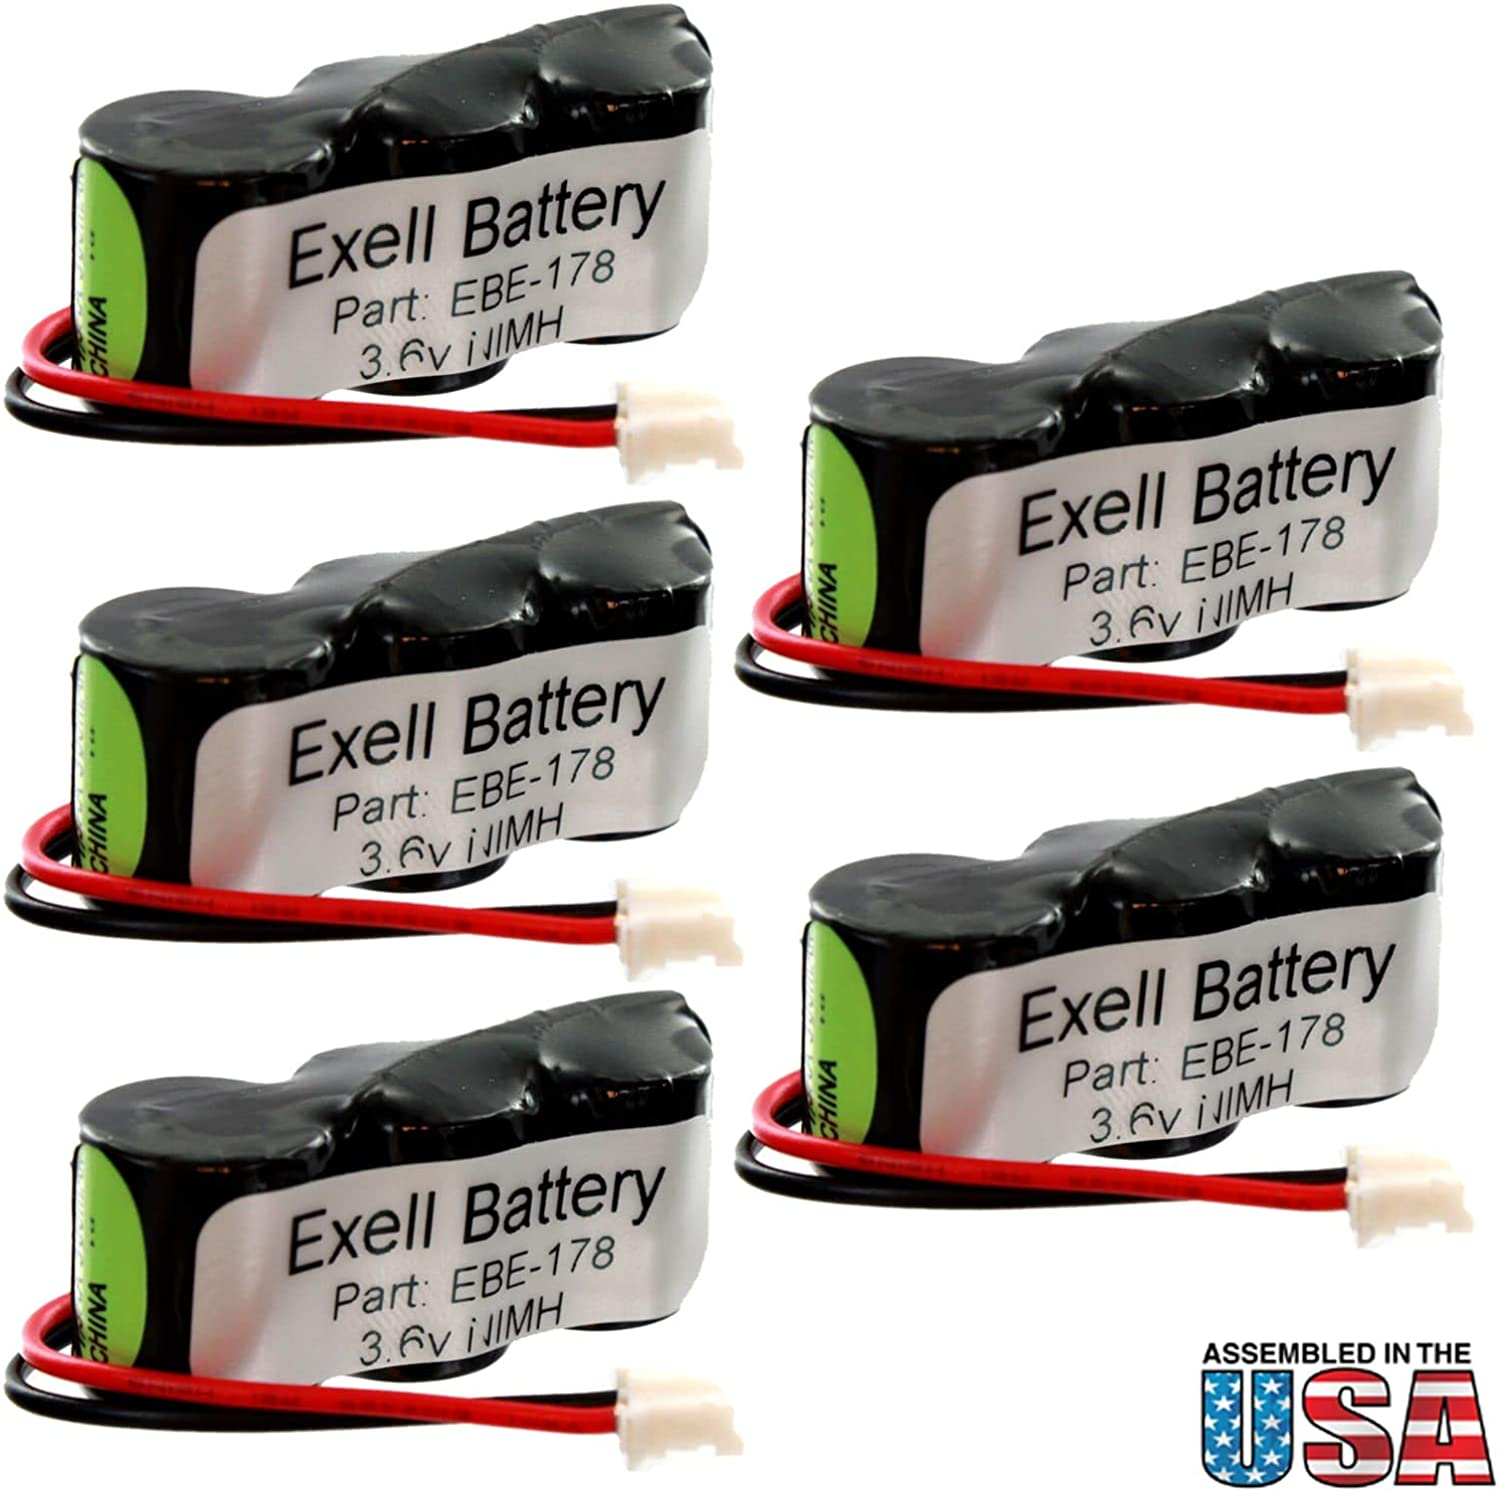 (5-Pack) Exell Battery Weather Station Battery Fits and Replaces Oregon Scientific STR918 Oregon Scientific STR928 Oregon Scientific STR938 Oregon Scientific STR968 Replacements 25AAH3BMX-2